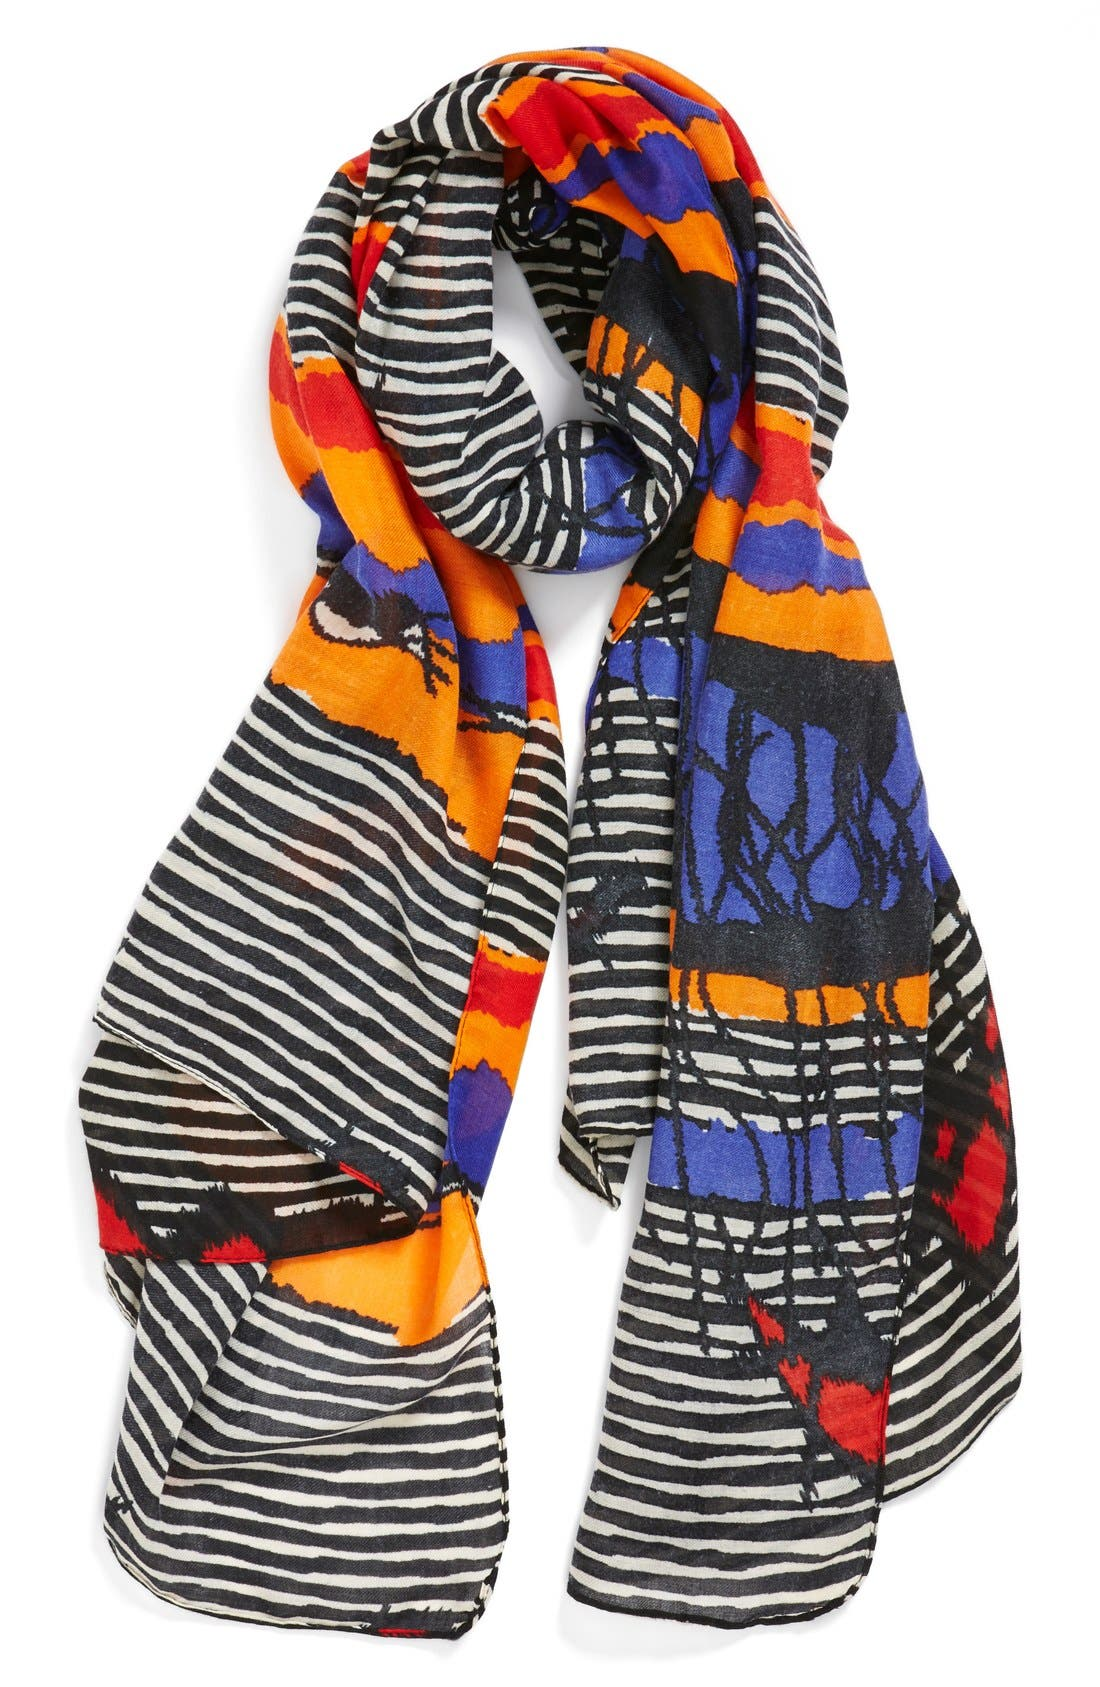 Main Image - Leith 'Abstract Safari' Oversized Oblong Scarf